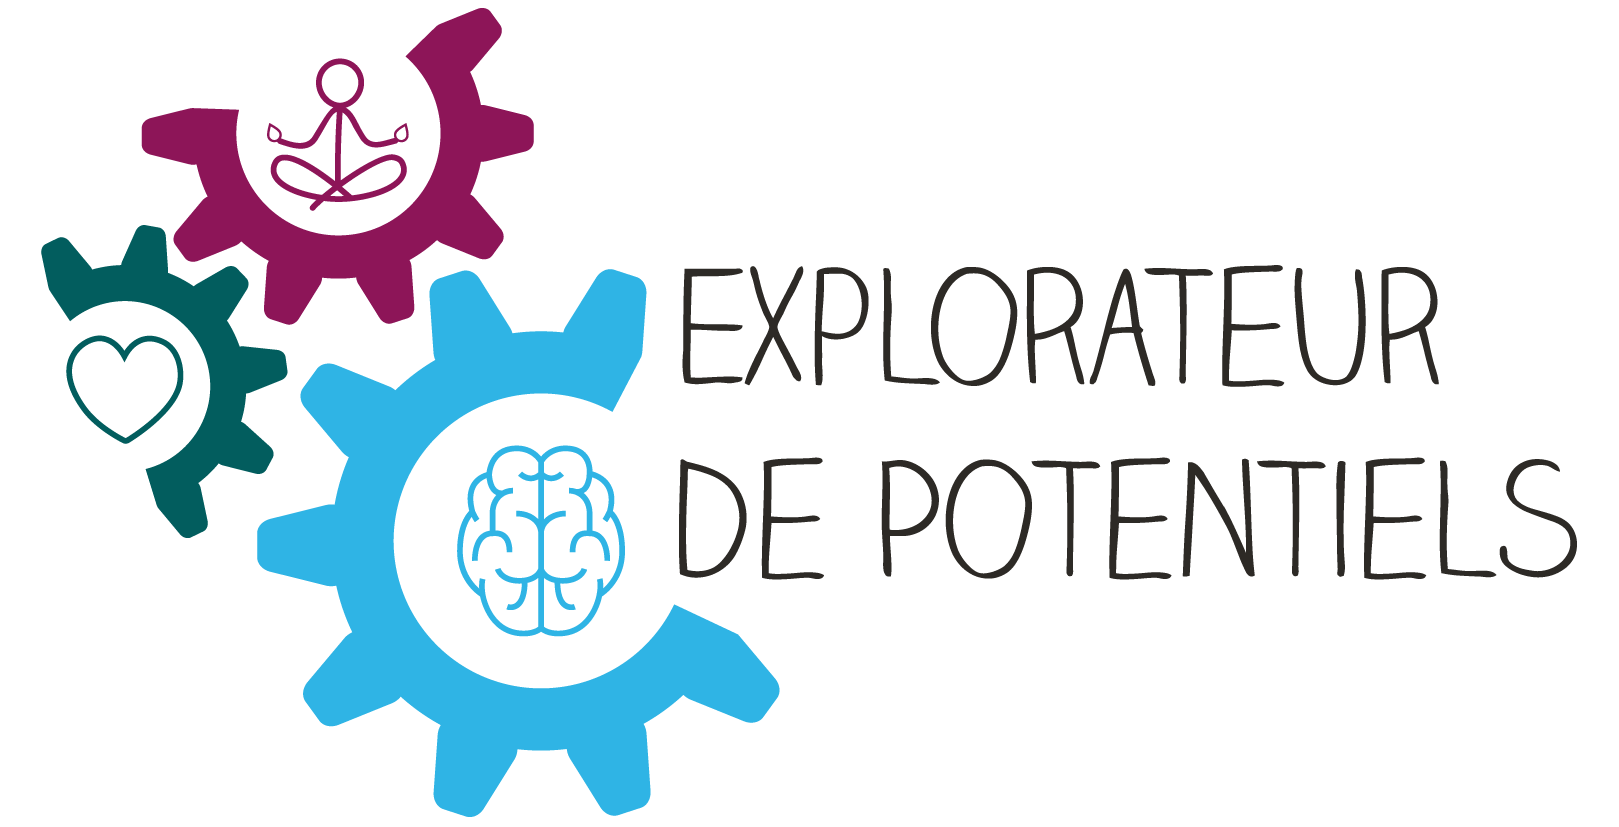 Explorateur de Potentiels